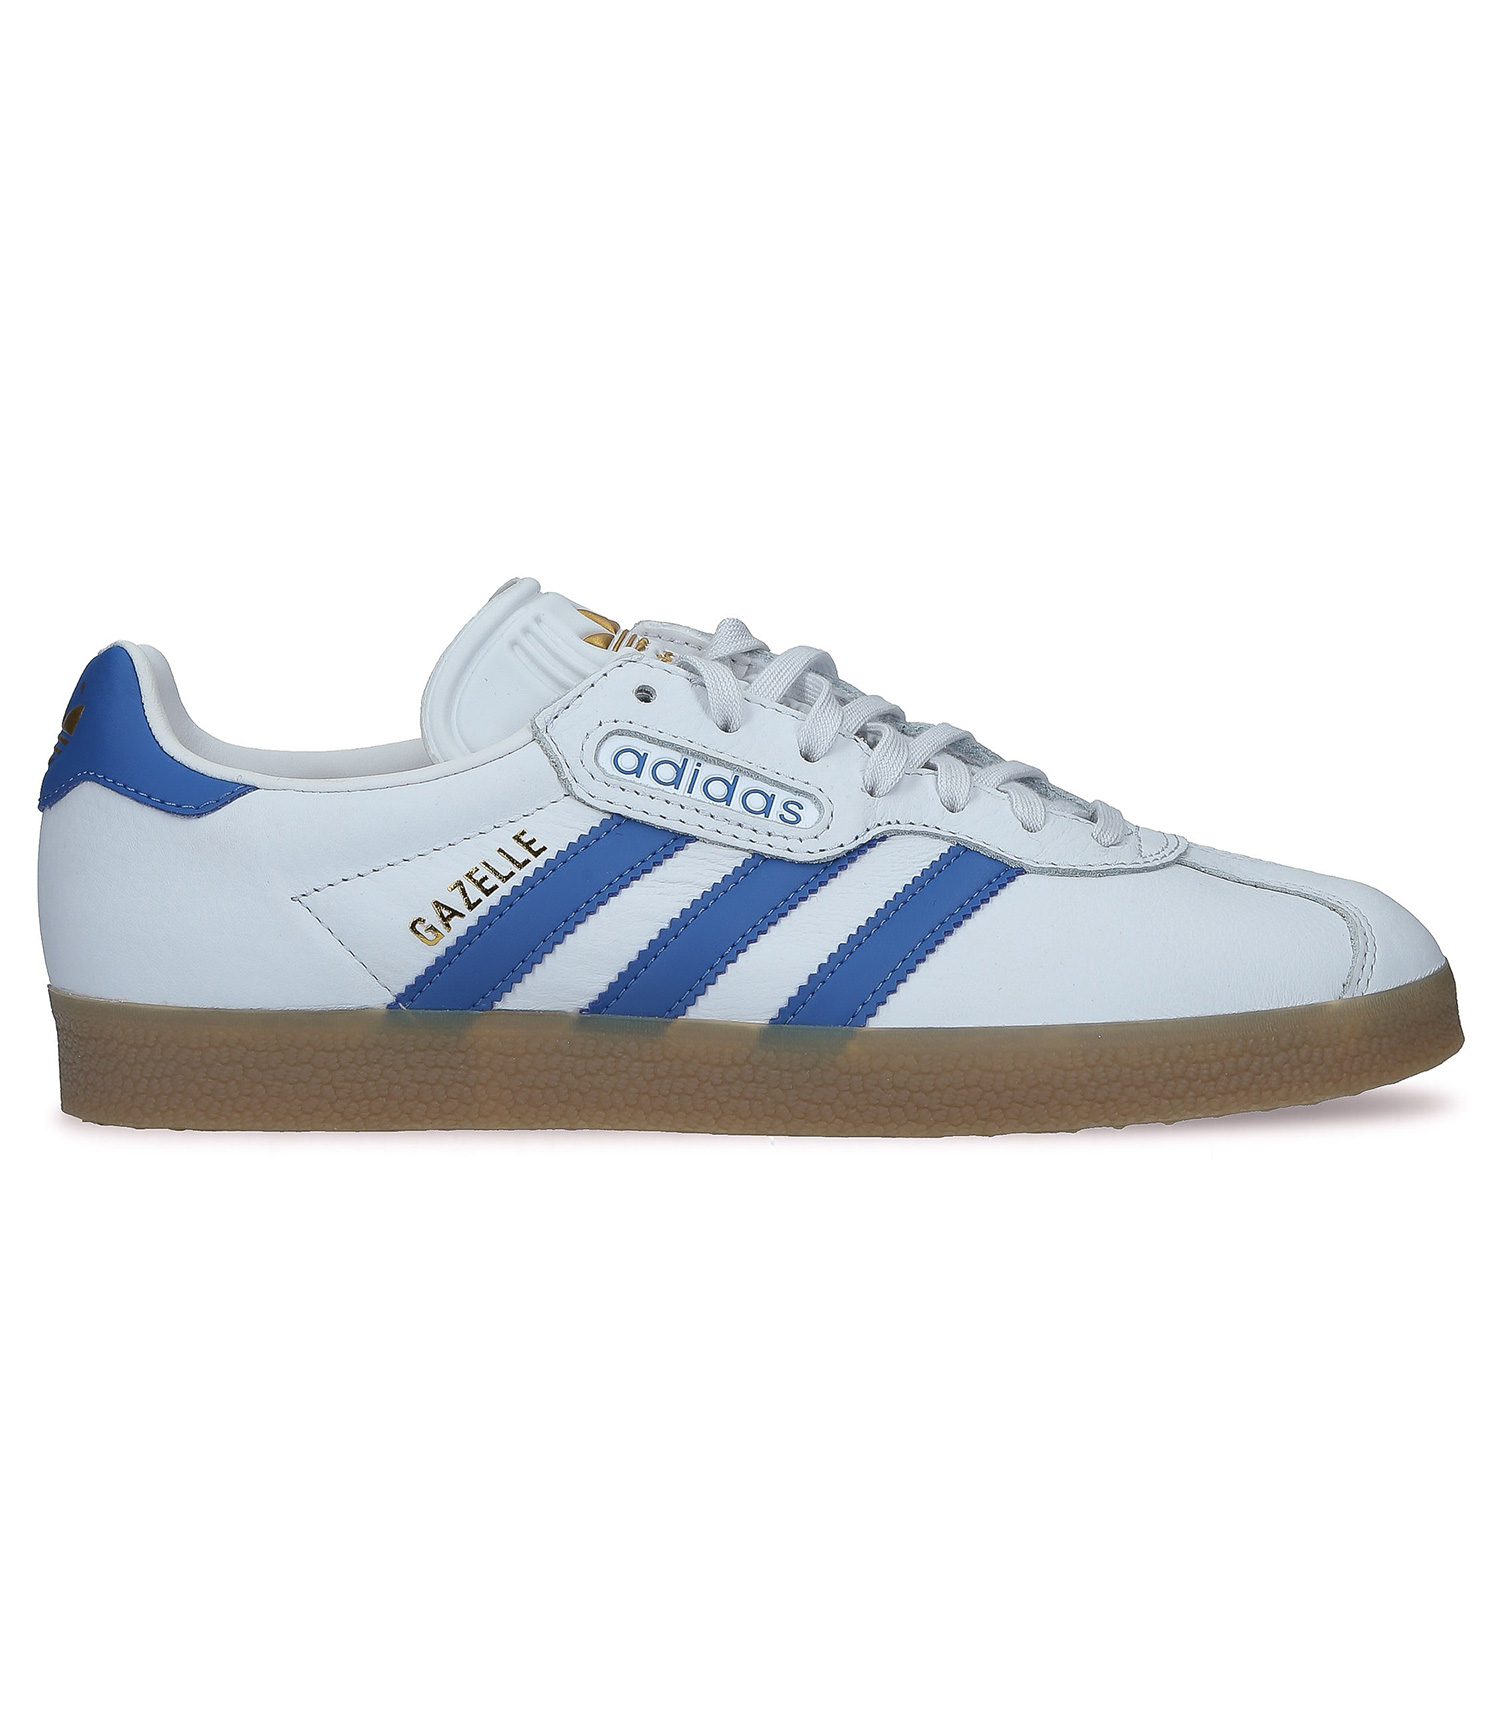 sneakers homme blanche adidas bande bleue